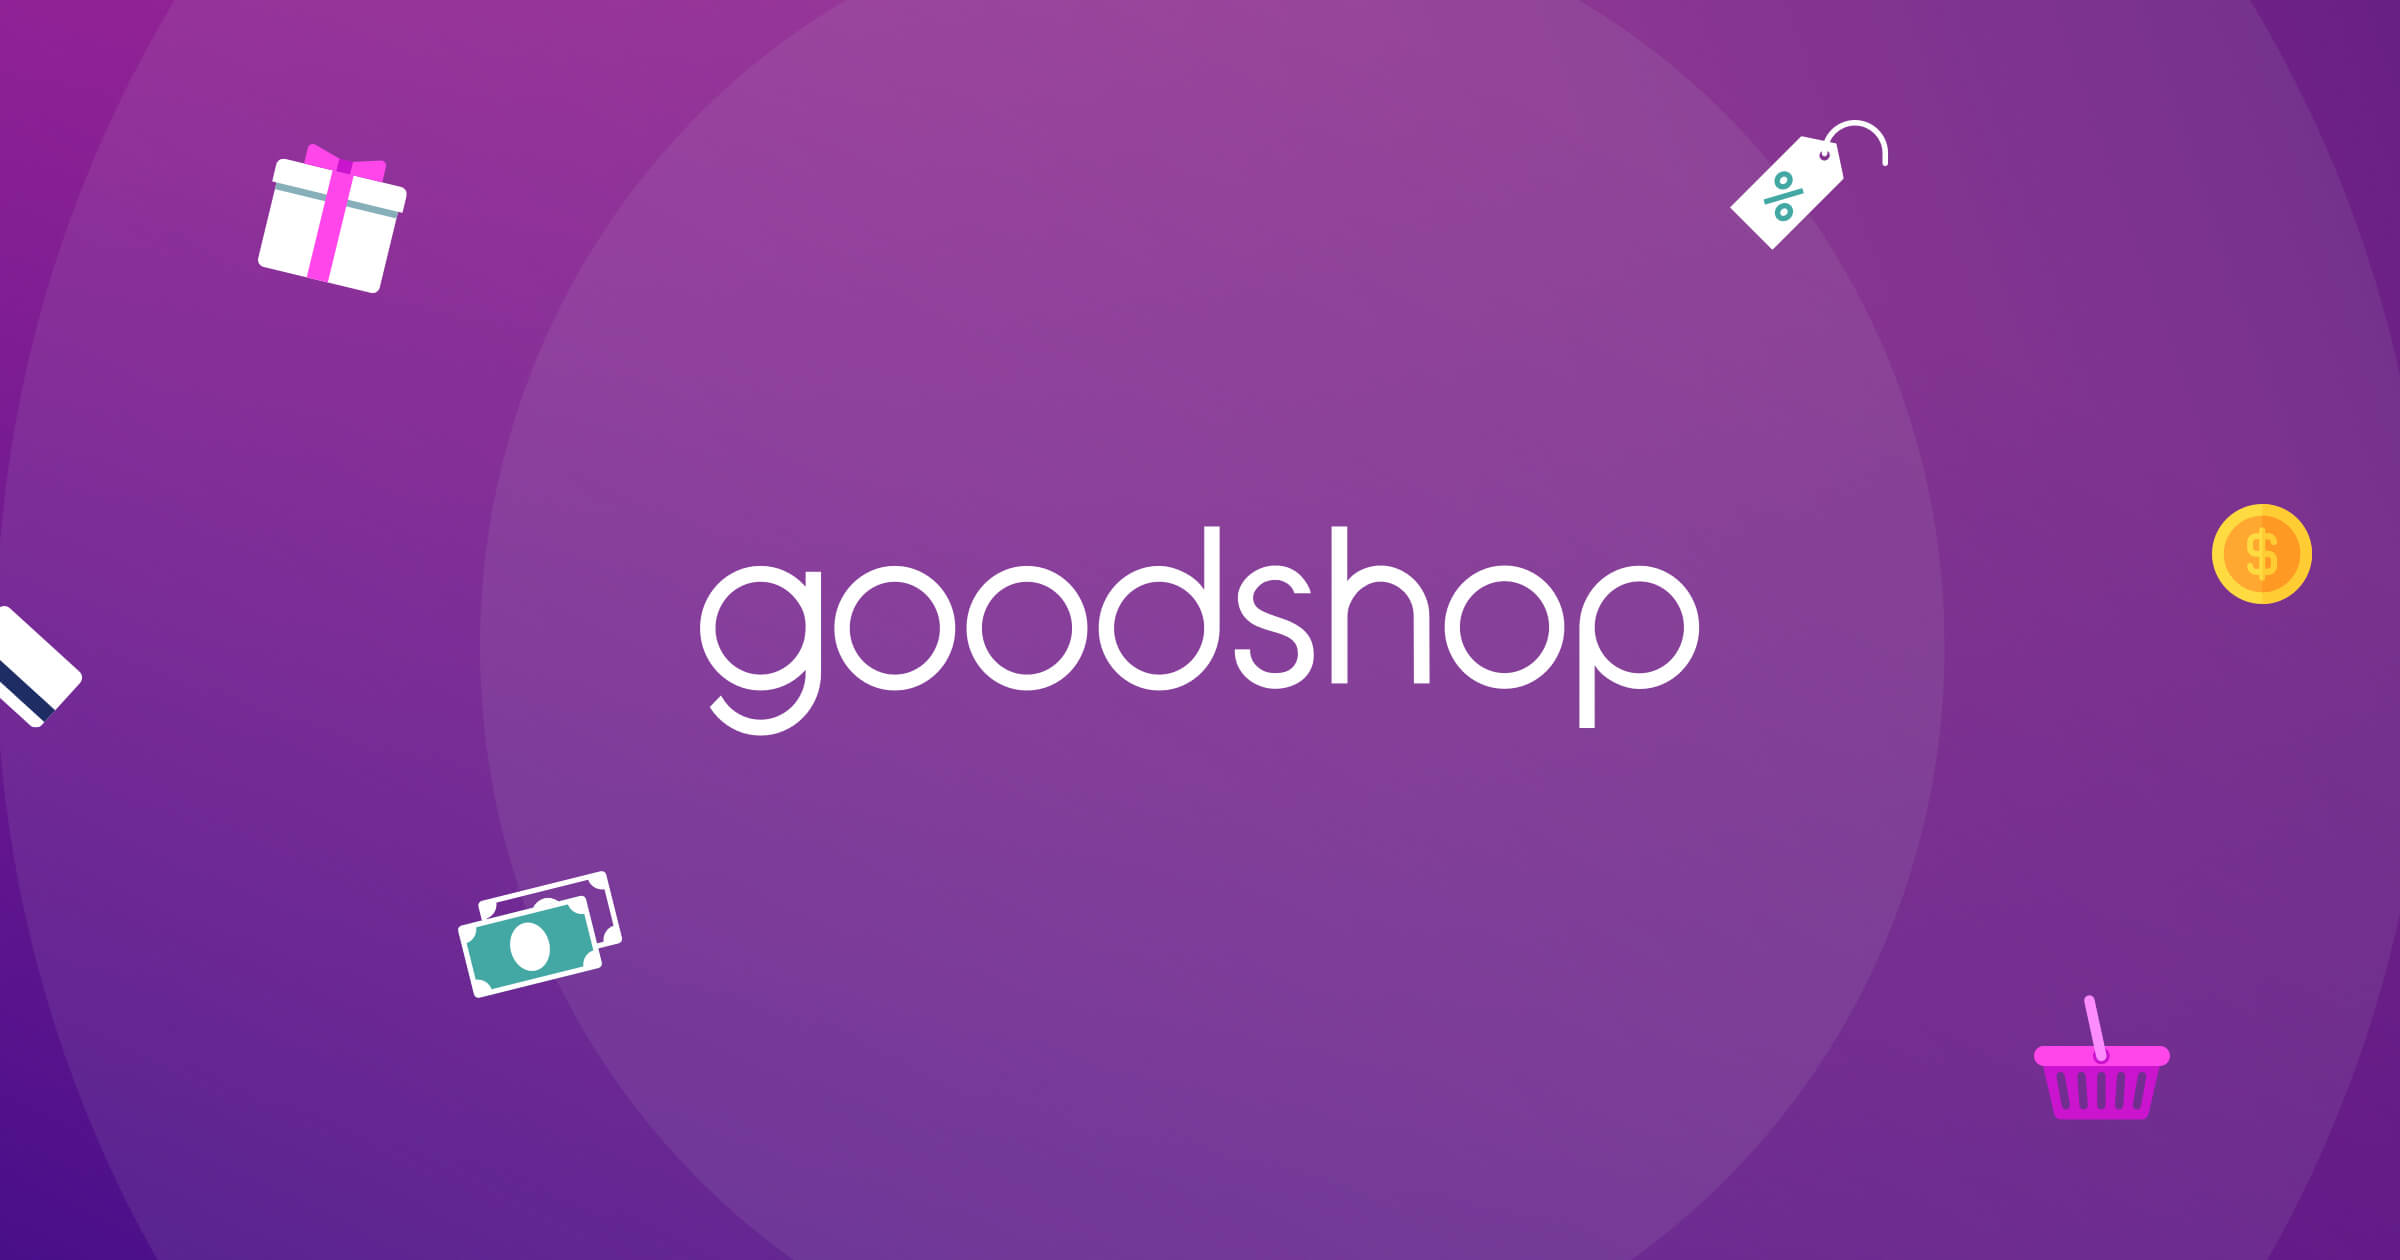 Goodshop - Coupons, coupon codes, exclusive deals and discounts